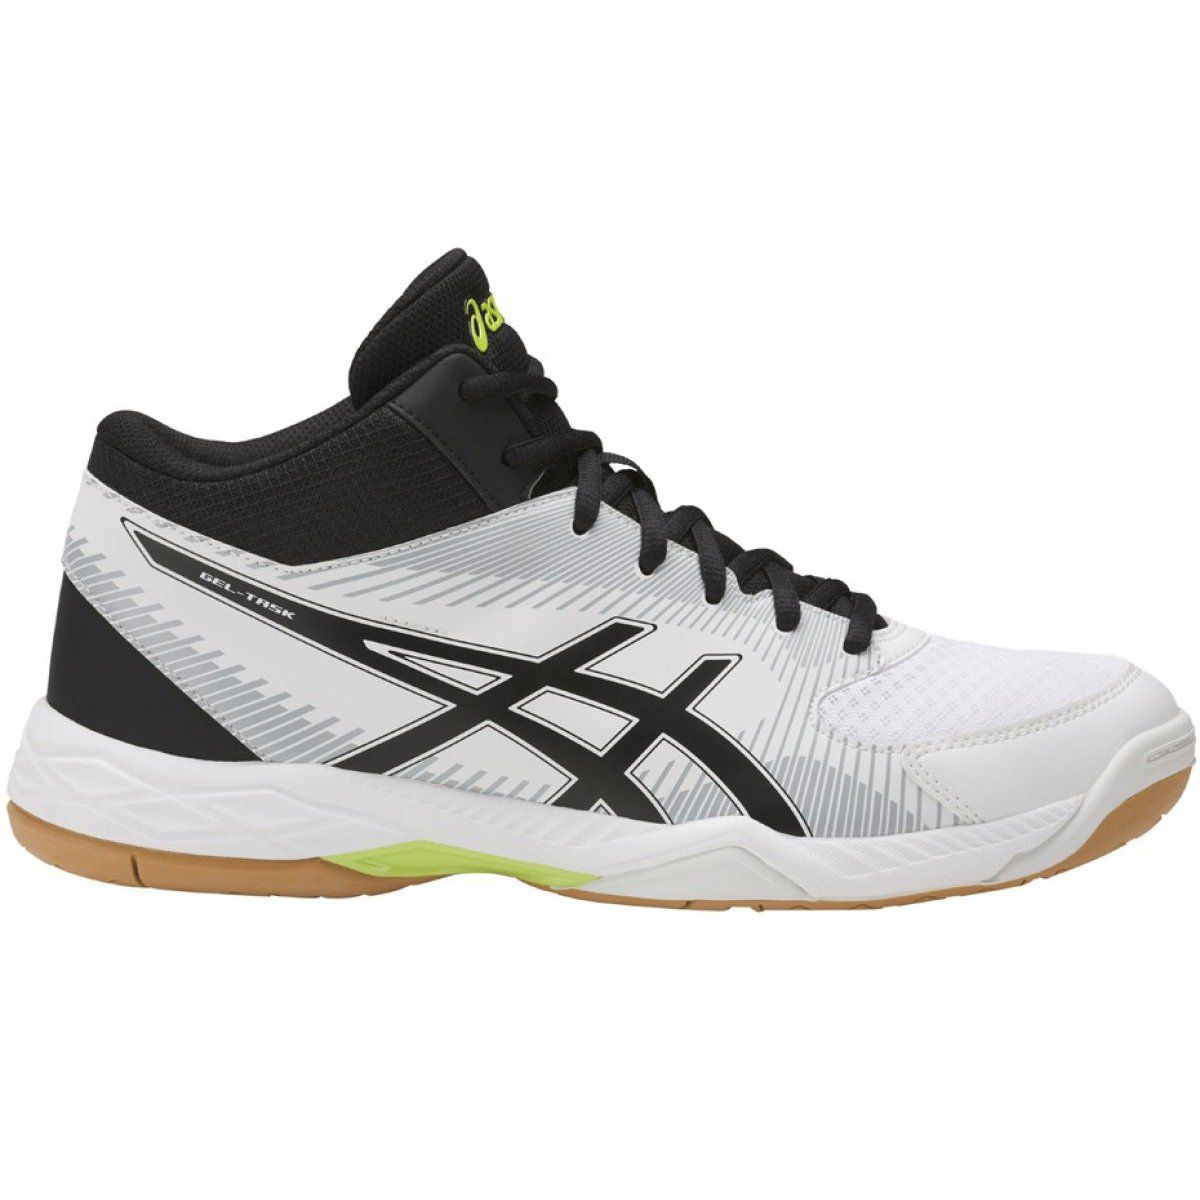 Asics Gel Task Mt M B703y 0190 Shoes White White Black Mens Volleyball Shoes Shoe Manufacturers Volleyball Shoes